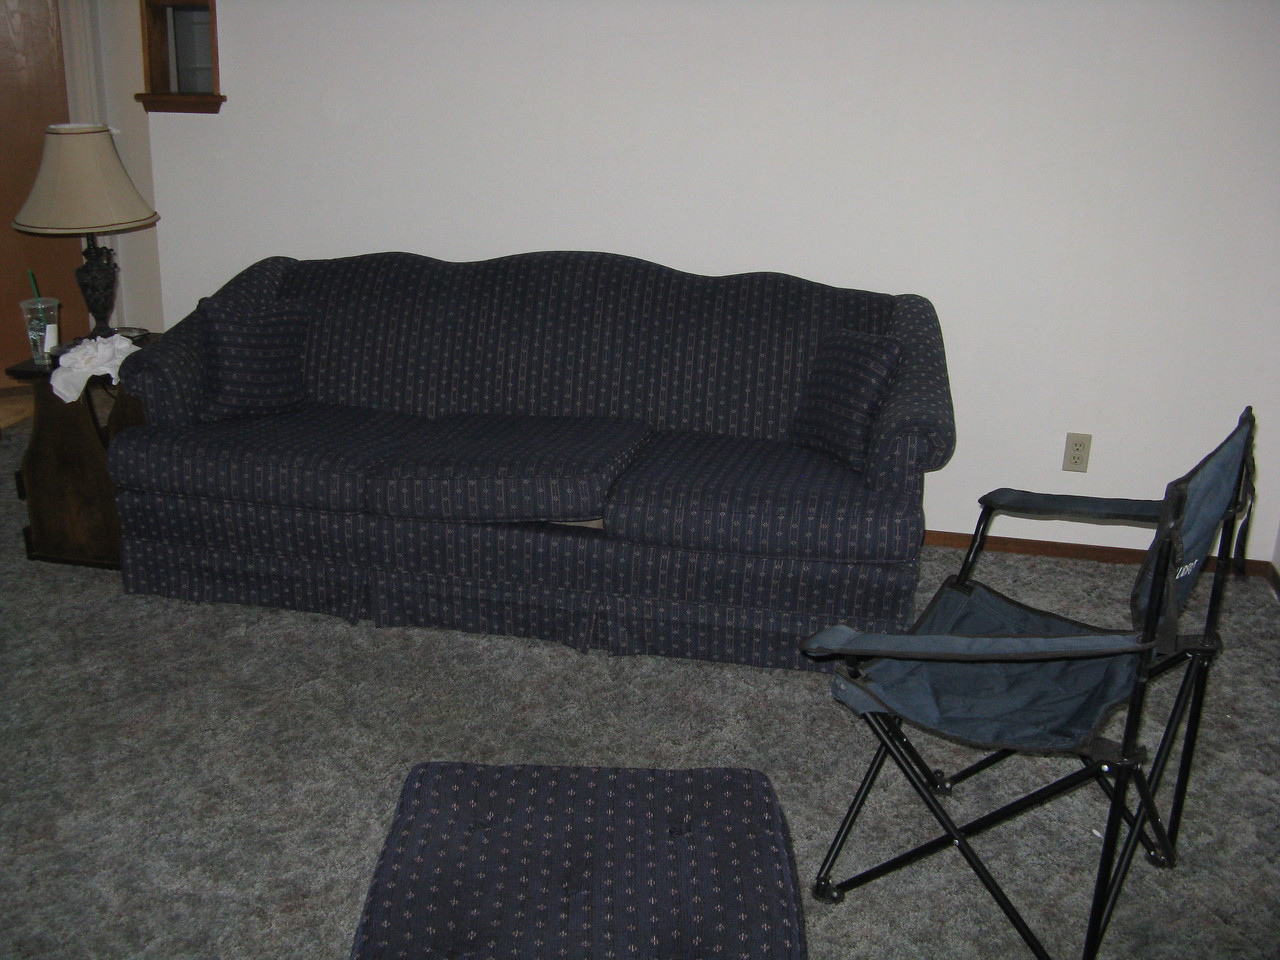 On the day that we arrived, Kevin found this sofa on Craig's list.  Incredibly, there was a nearly matching ottoman available as well.  We picked up the stuff in the van.